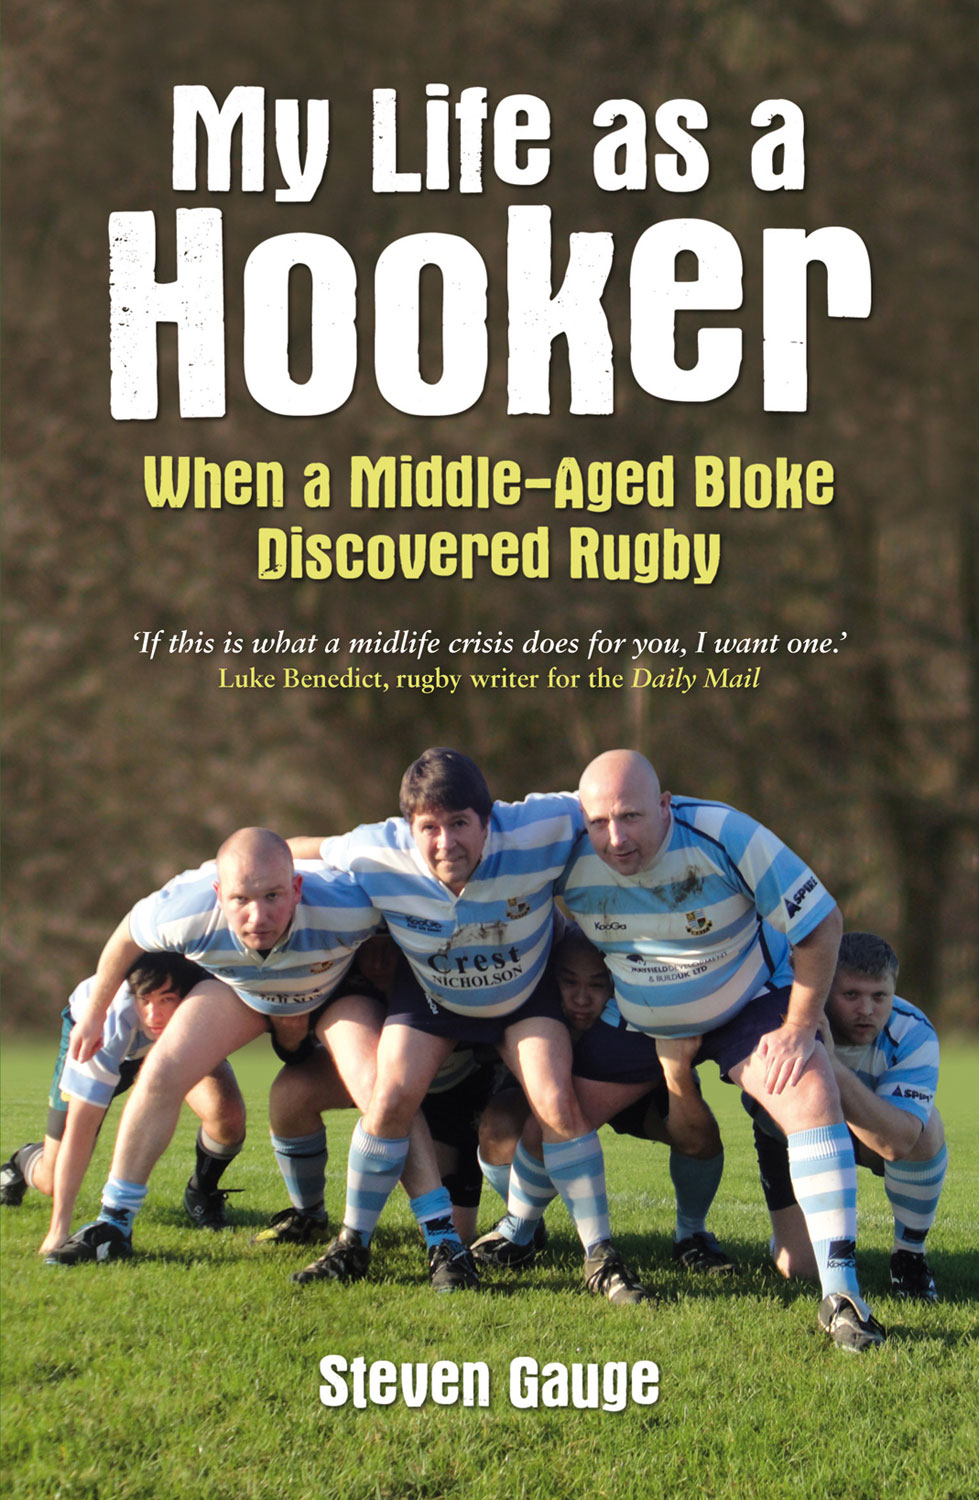 My Life as a Hooker: When a Middle-Aged Bloke Discovered Rugby By: Steven Gauge